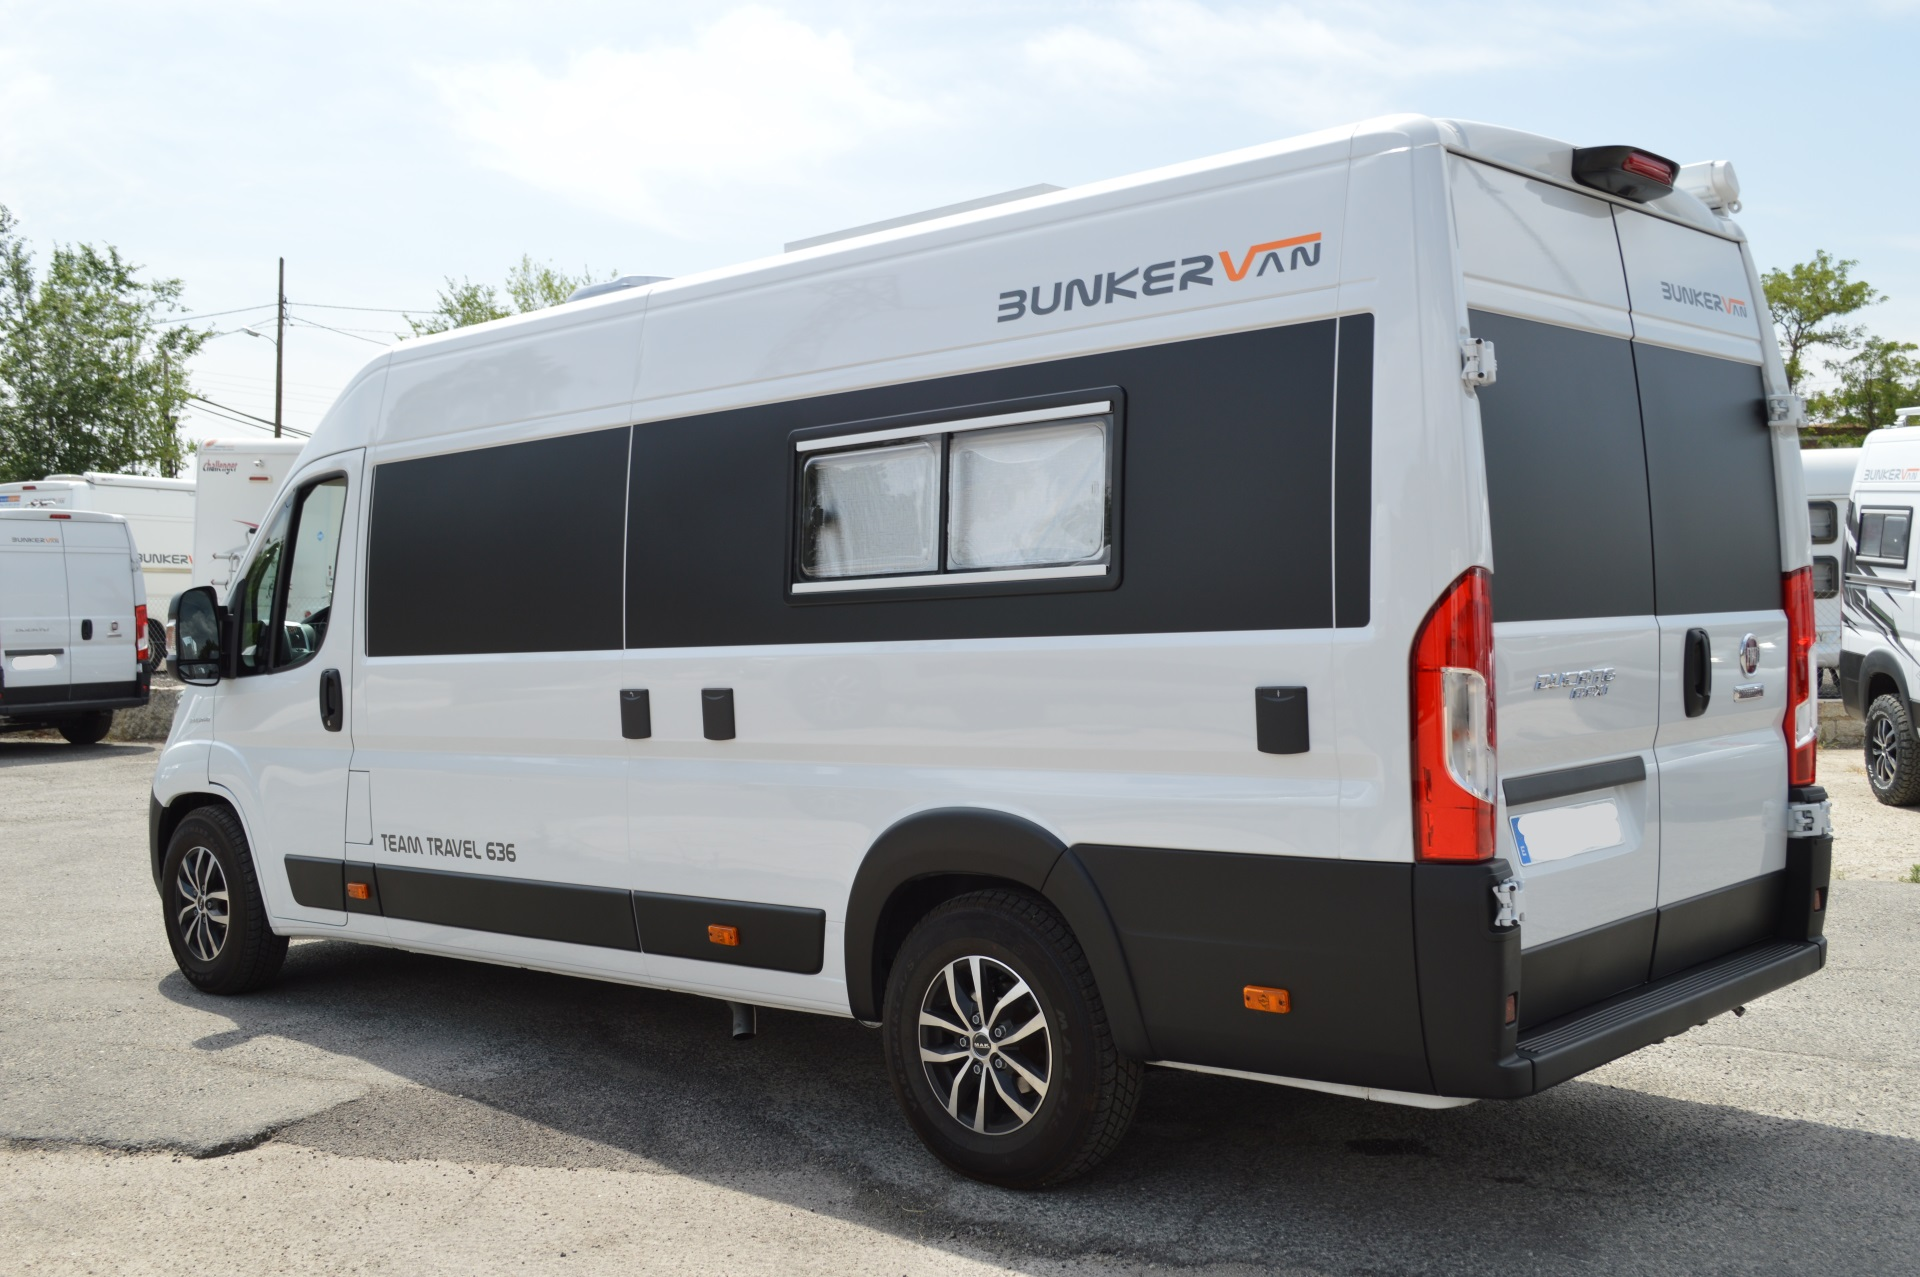 Team Travel 636 L4H2 Fiat Ducato Bunkervan (30)